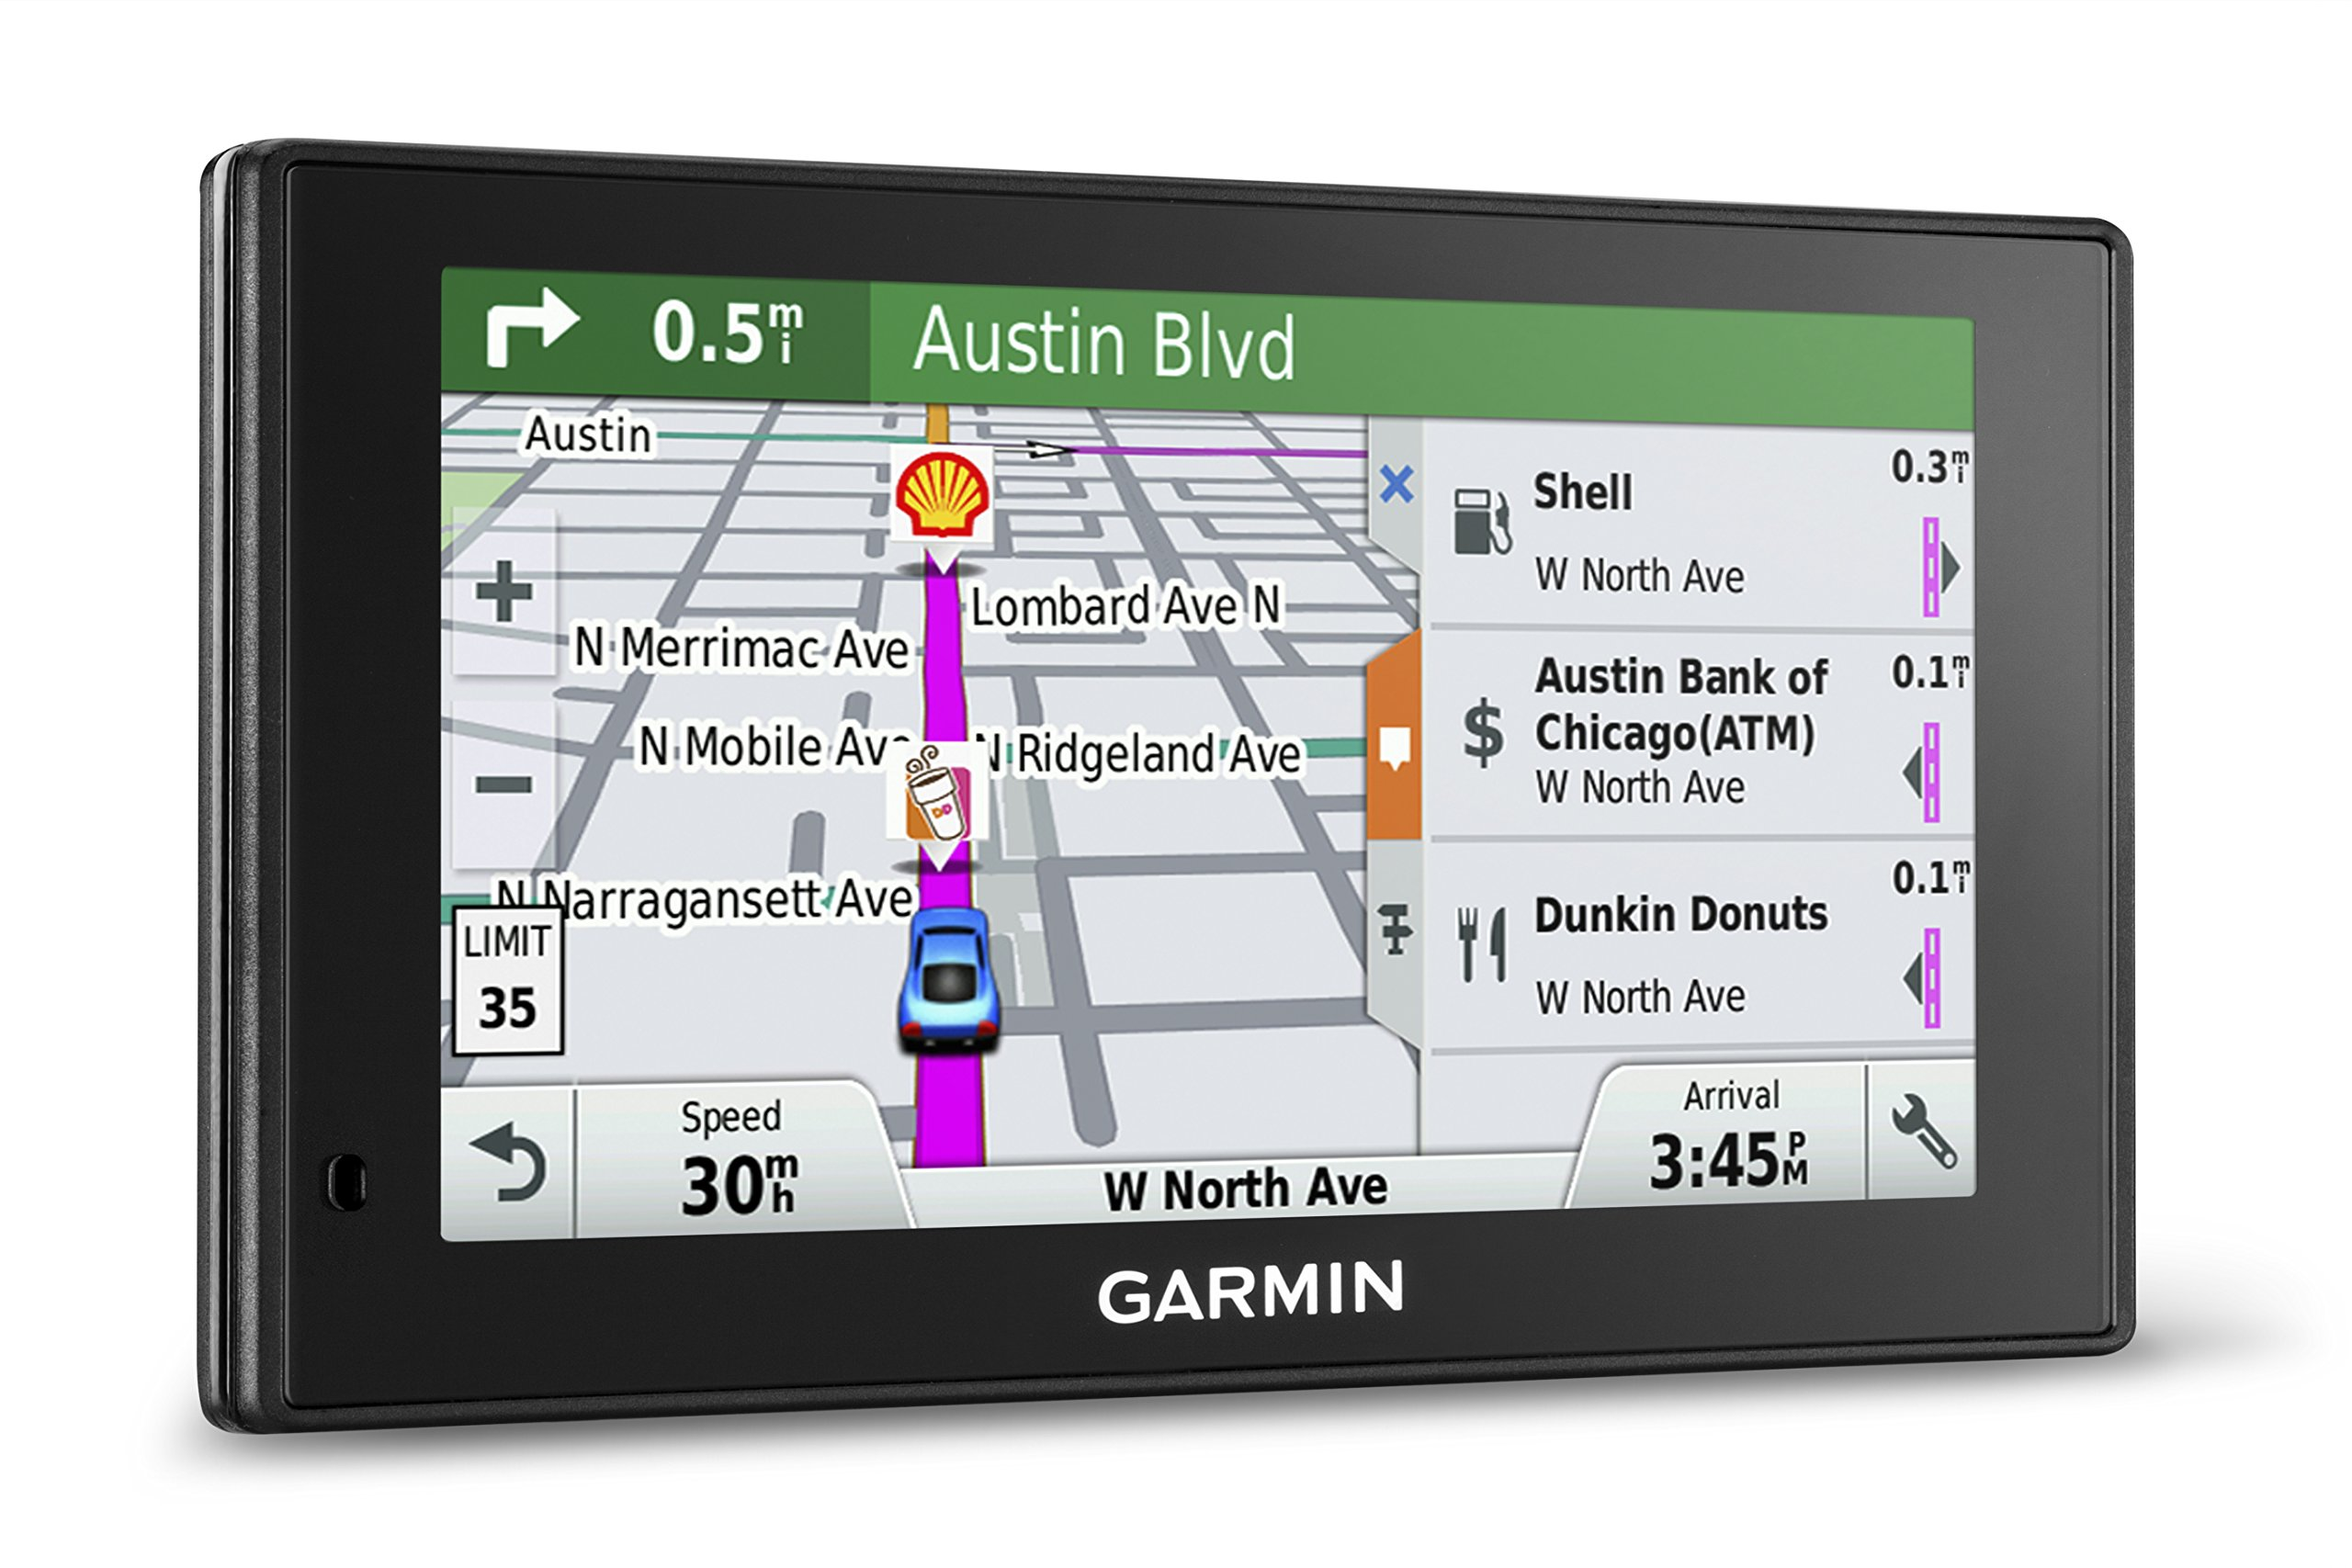 Garmin DriveSmart 70 NA LMT GPS Navigator System with Lifetime Maps and Traffic, Smart Notifications, Voice Activation, and Driver Alerts